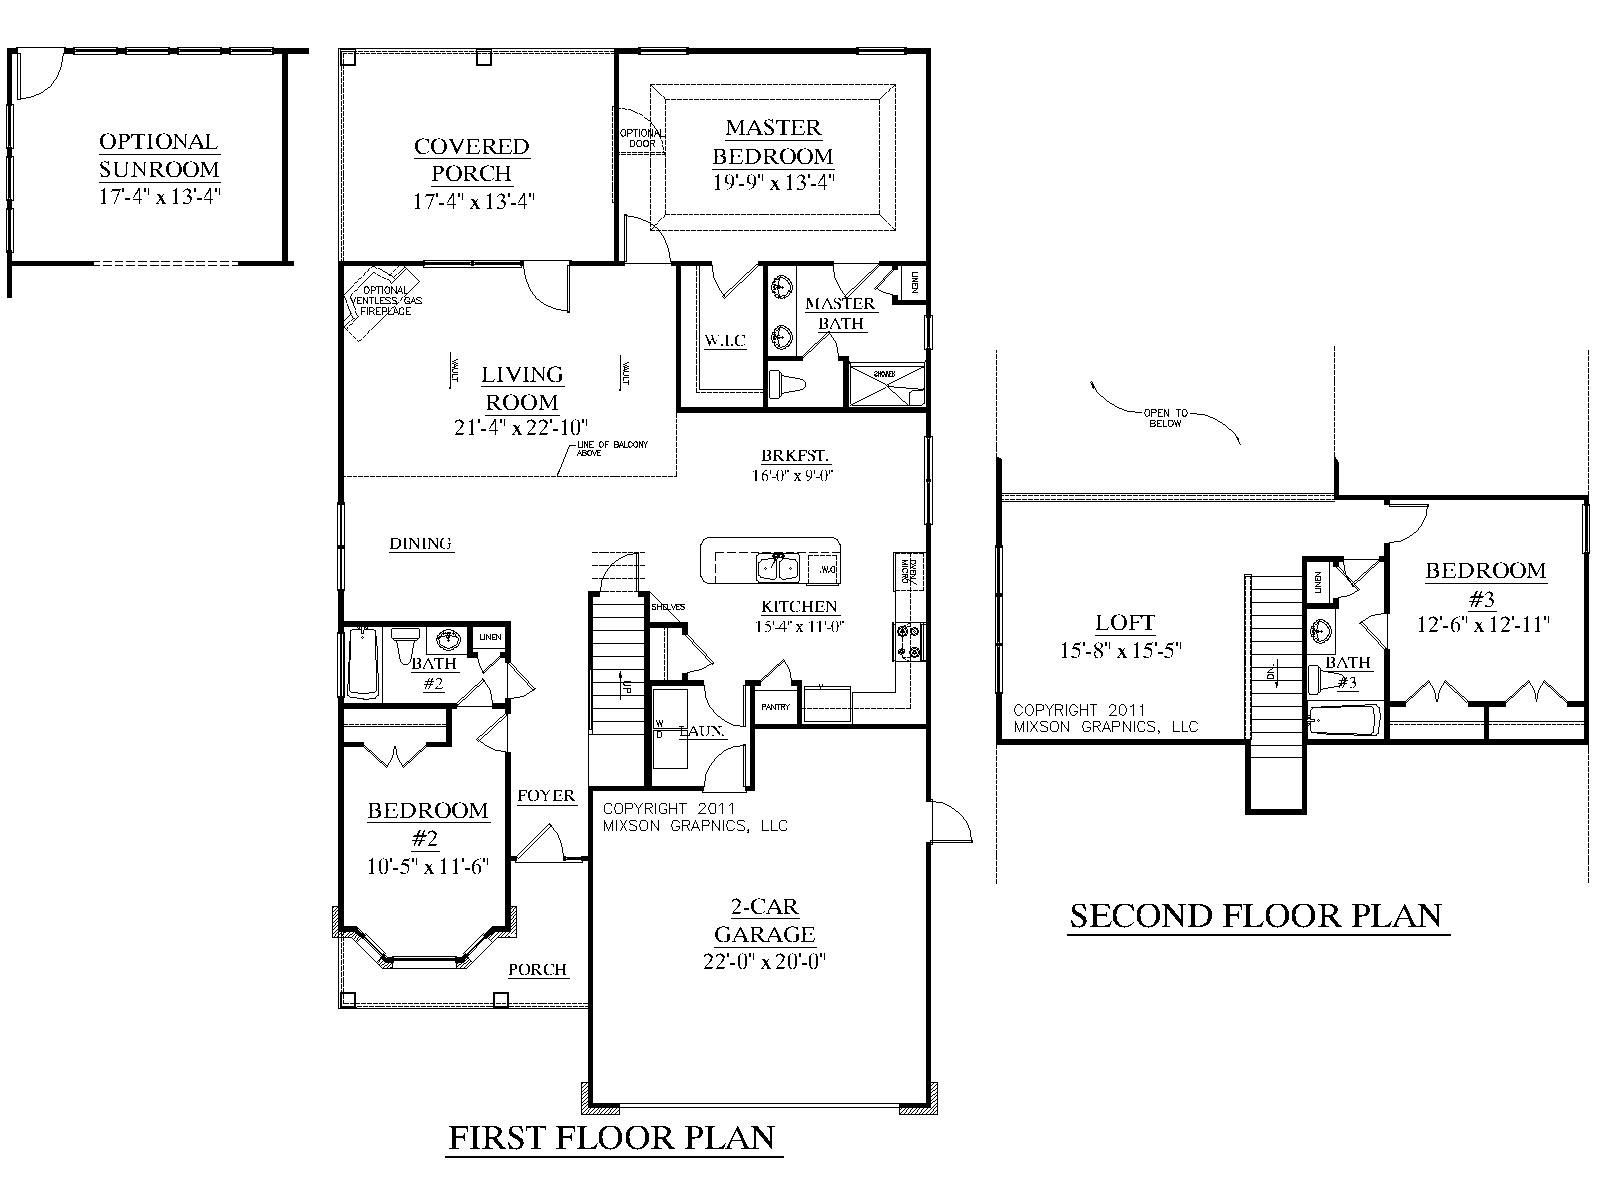 House plan 2219 dawson floor plan traditional 1 1 2 for 2 story house plans master bedroom downstairs